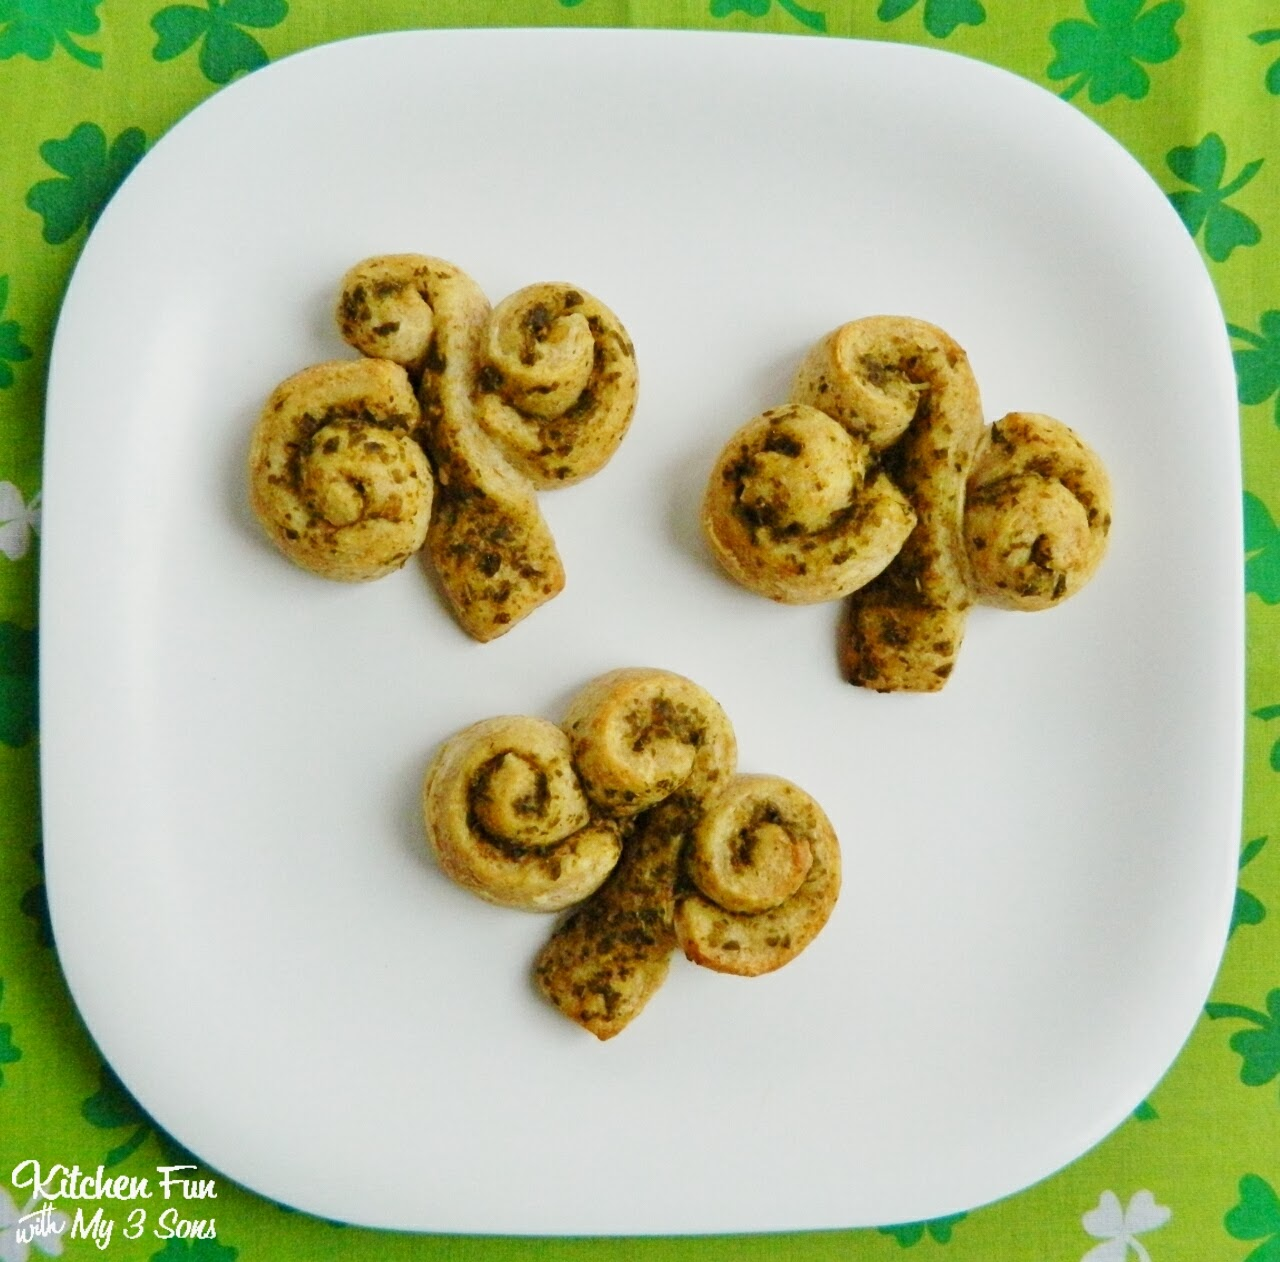 http://kitchenfunwithmy3sons.blogspot.com/2014/02/easy-st-patricks-day-shamrock-rolls.html